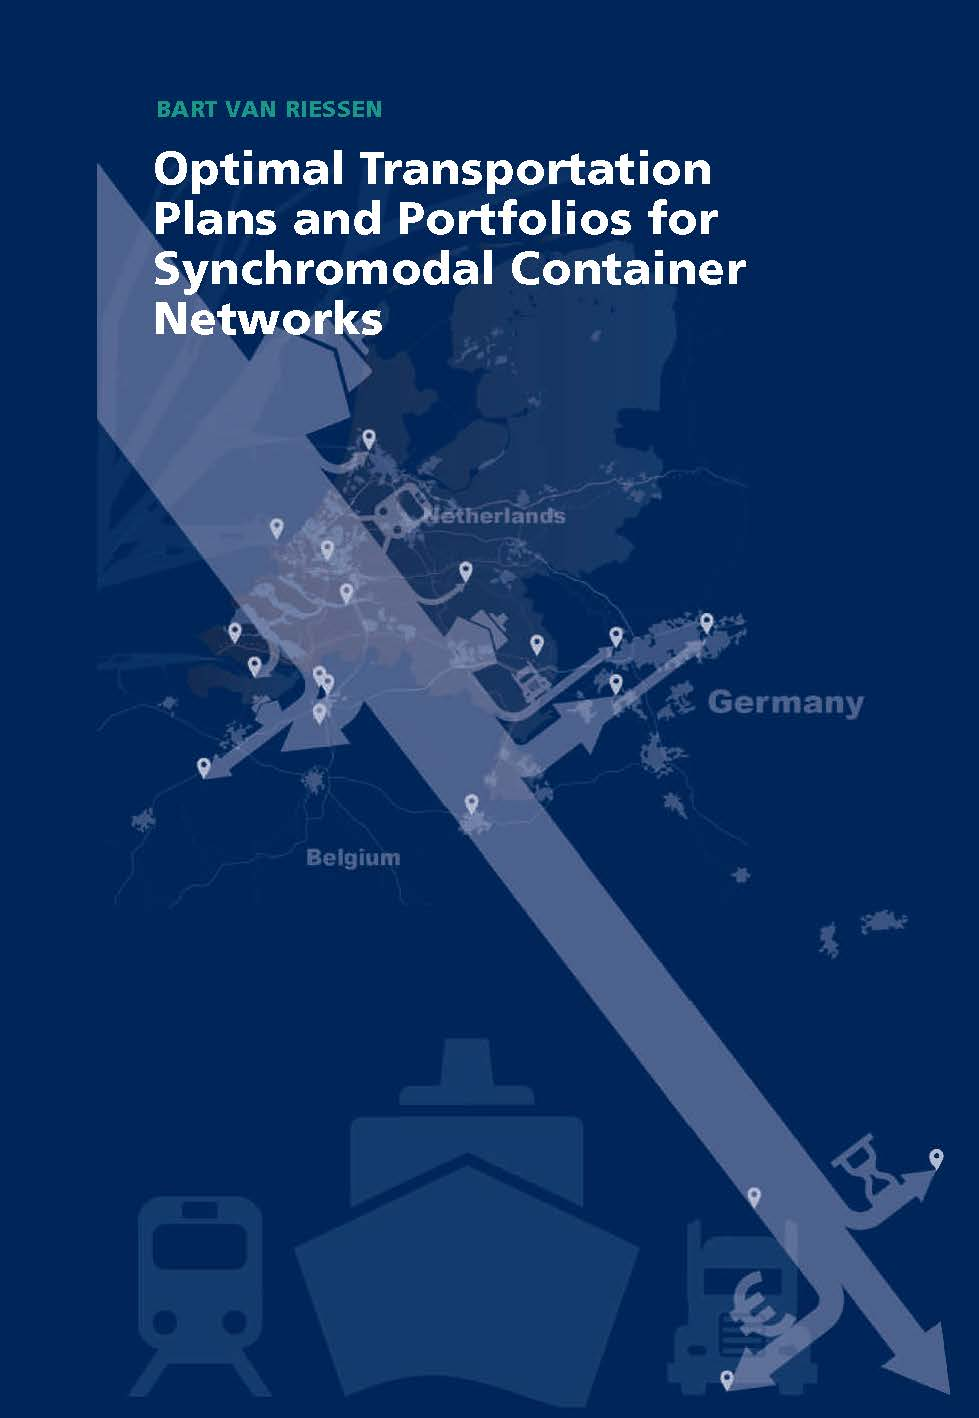 Optimal Transportation Plans and Portfolios for Synchromodal Container Networks